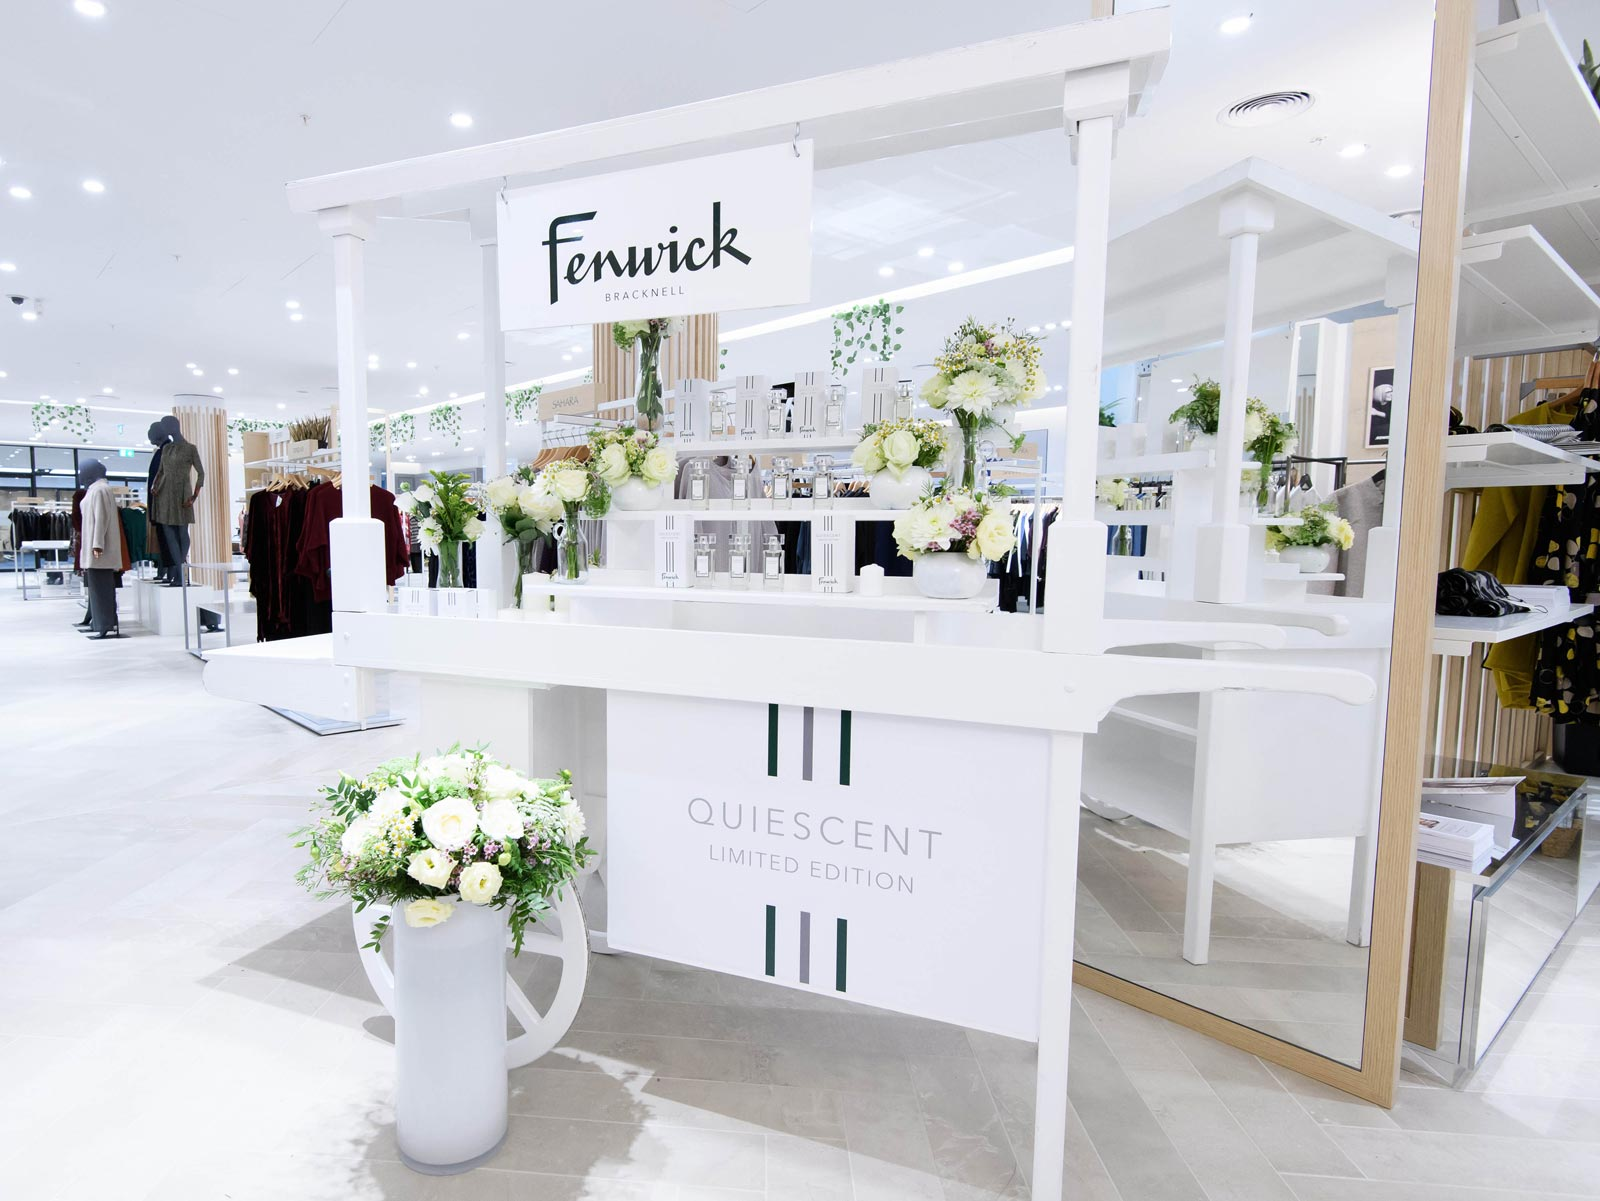 Fenwick Launches Quiescent Fragrance in Conjunction with New Bracknell Store 11